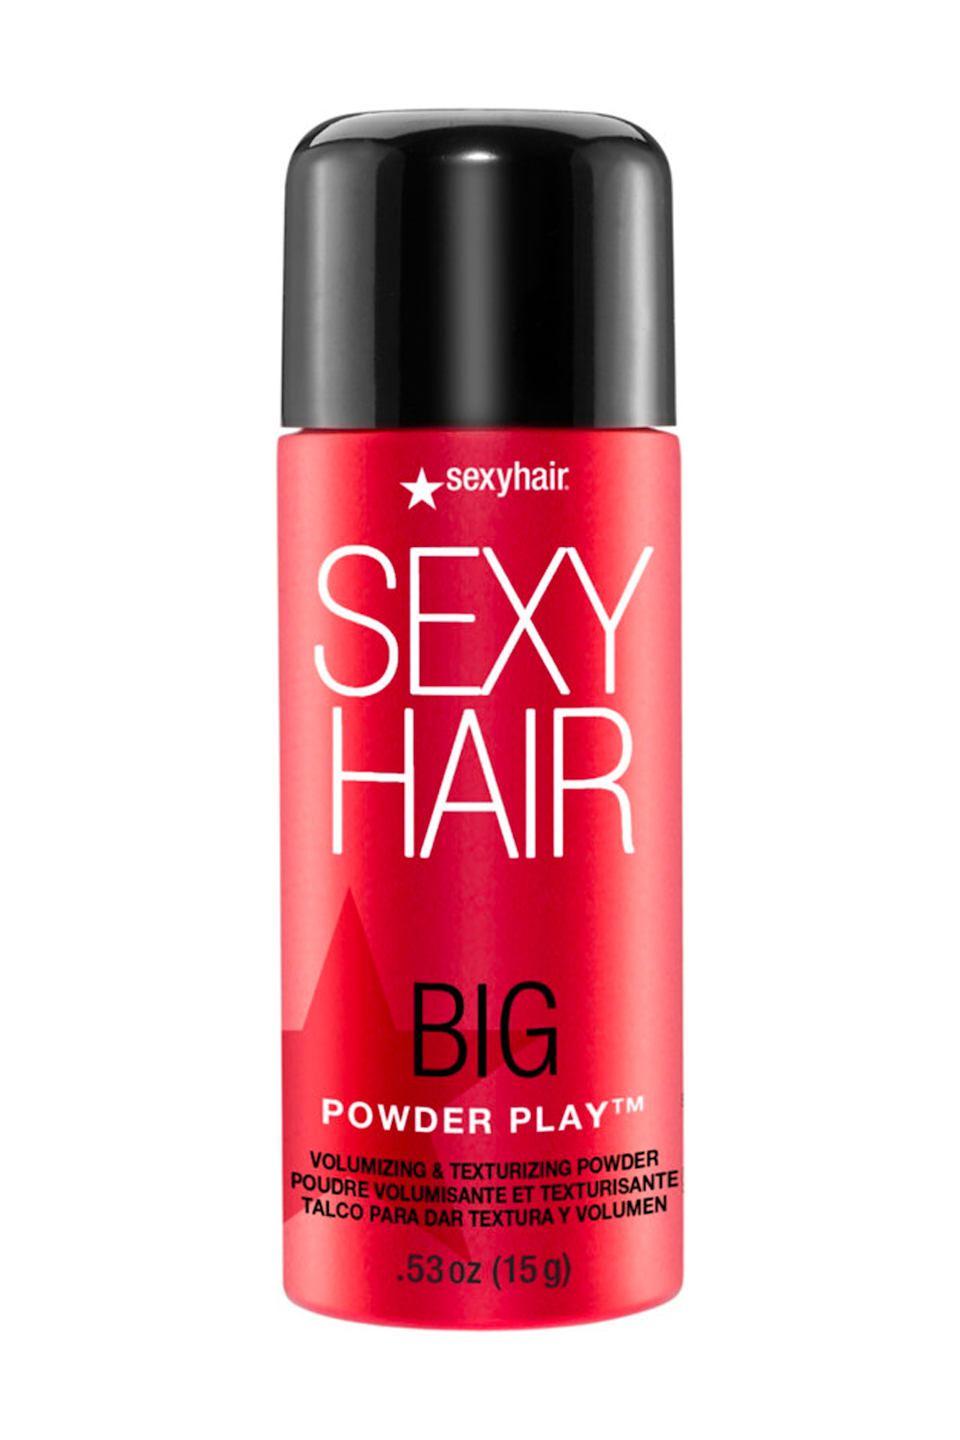 """<p><strong>Sexy Hair</strong></p><p>ulta.com</p><p><strong>$18.95</strong></p><p><a href=""""https://go.redirectingat.com?id=74968X1596630&url=https%3A%2F%2Fwww.ulta.com%2Fulta%2Fbrowse%2FproductDetail.jsp%3FproductId%3DxlsImpprod4270041&sref=https%3A%2F%2Fwww.cosmopolitan.com%2Fstyle-beauty%2Fbeauty%2Fg34362098%2Fbest-hair-volumizing-powder%2F"""" rel=""""nofollow noopener"""" target=""""_blank"""" data-ylk=""""slk:Shop Now"""" class=""""link rapid-noclick-resp"""">Shop Now</a></p><p>There's a reason this hair volume powder has been around for so many years—it's wallet friendly, easy to apply, and gets the job done every freakin' time. After you blast it on your <a href=""""https://www.cosmopolitan.com/style-beauty/beauty/g32495959/best-root-touch-up/"""" rel=""""nofollow noopener"""" target=""""_blank"""" data-ylk=""""slk:roots"""" class=""""link rapid-noclick-resp"""">roots</a>, <strong>t</strong><strong>he formula quickly dries down into a liquid-y texture</strong>, leaving behind the perfect amount of volume, grit, and lift.</p>"""